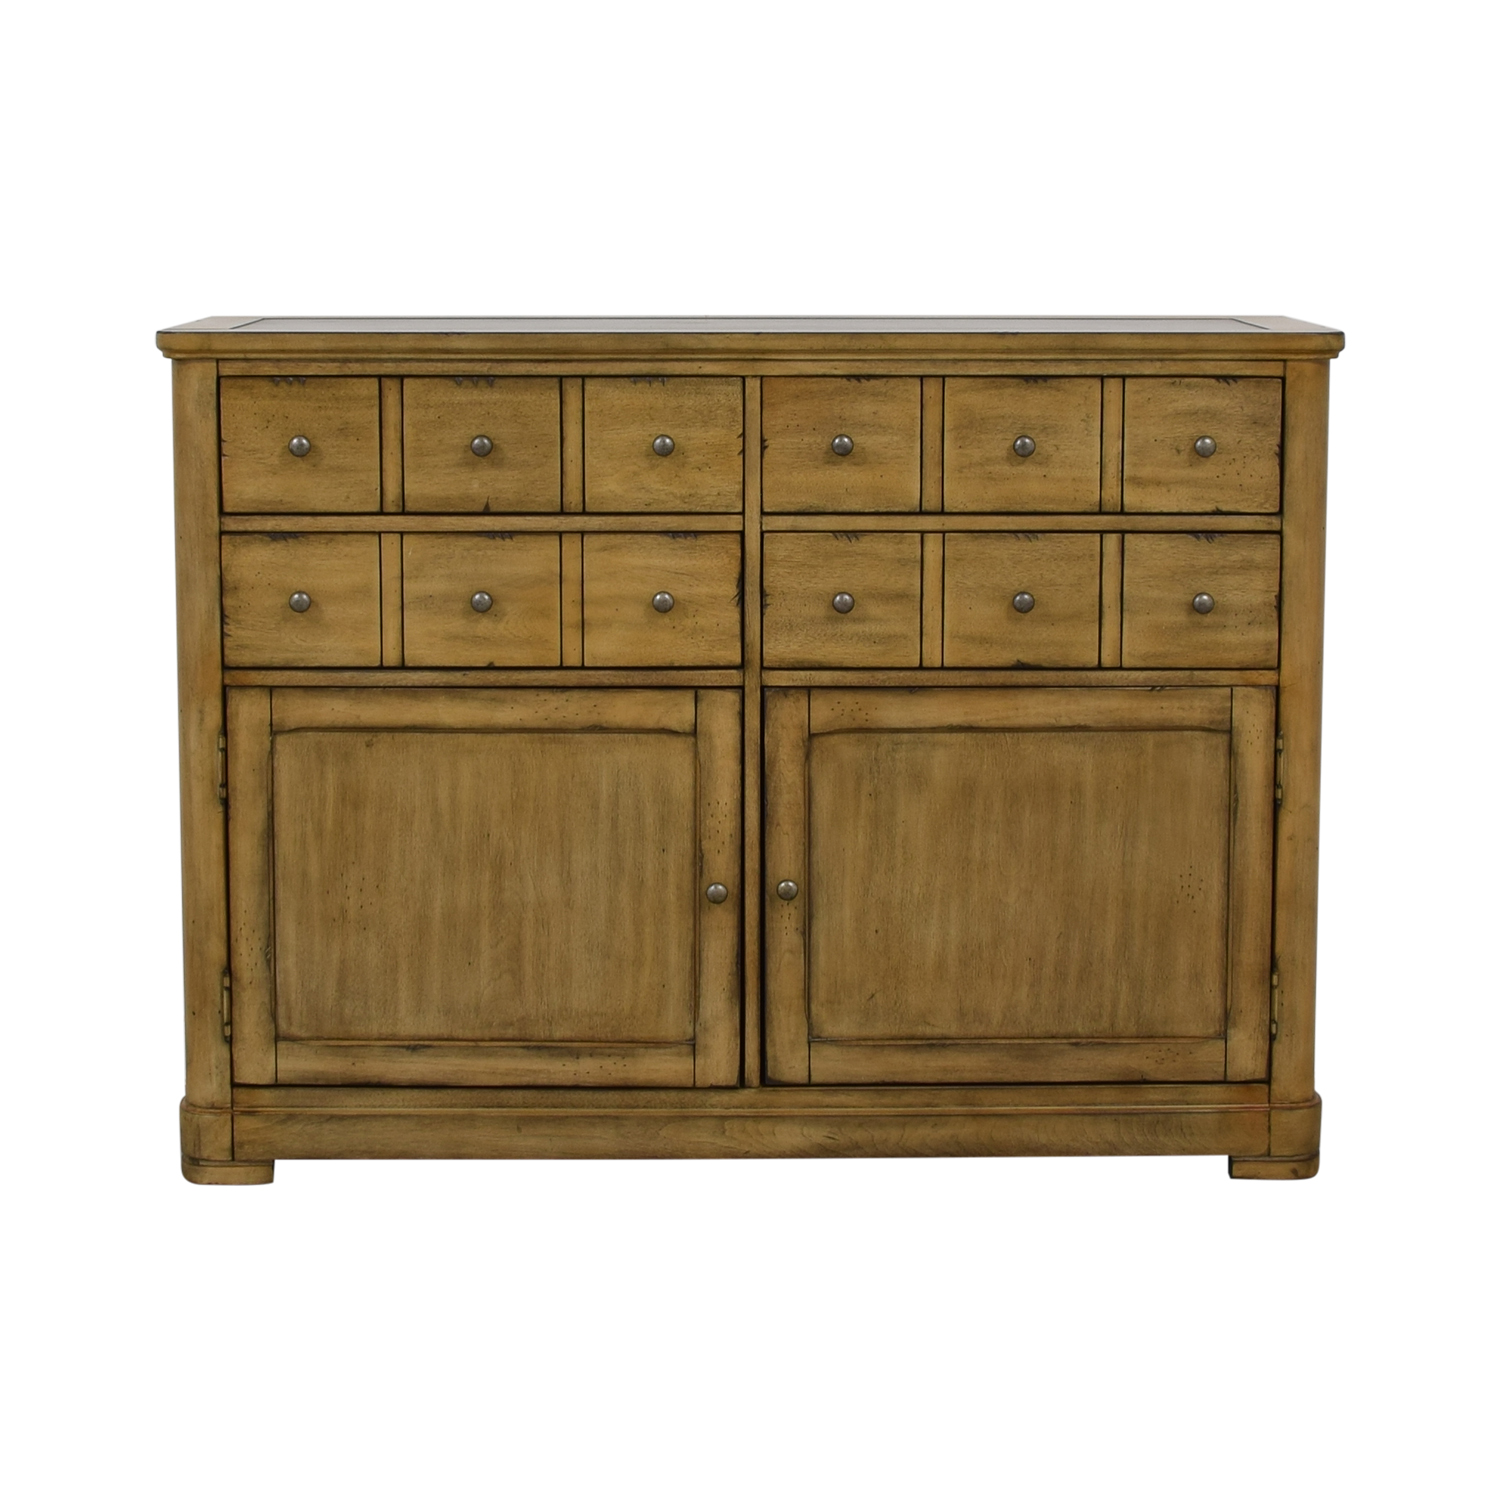 Raymour & Flanigan Raymour & Flanigan Four-Drawer Side Cabinet Buffet Cabinets & Sideboards